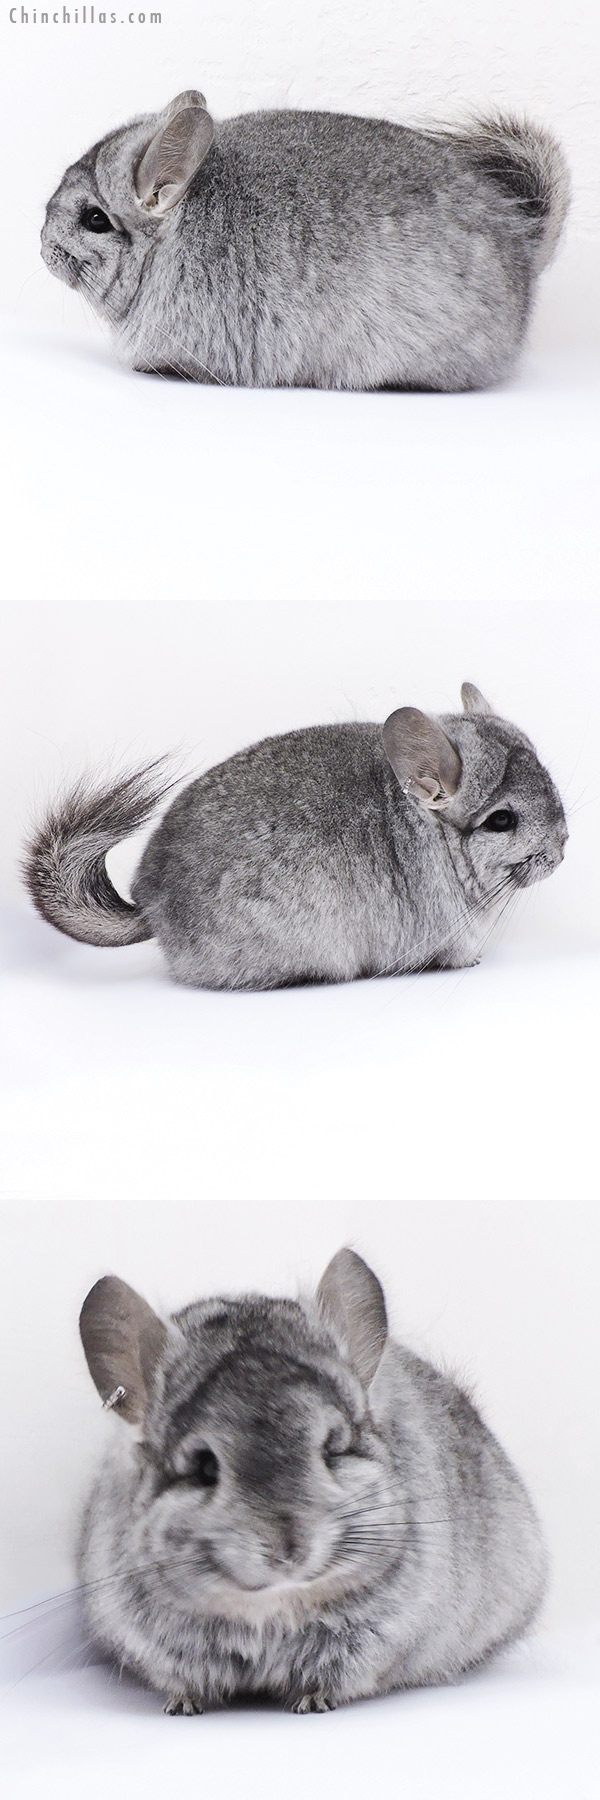 19092 Blocky Standard ( Ebony & Locken Carrier ) CCCU Royal Persian Angora Female Chinchilla